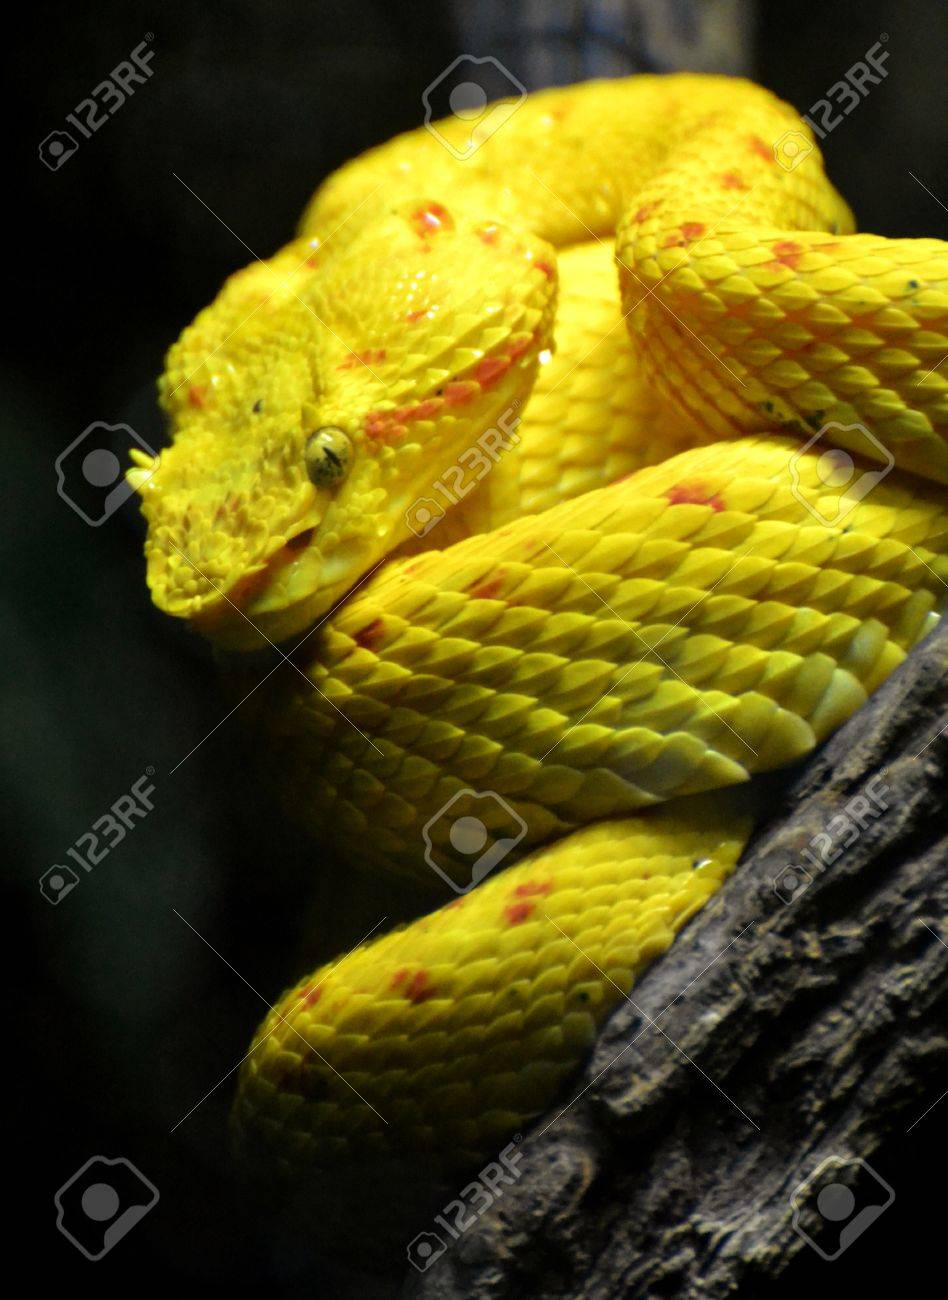 Eyelash Viper Bothriechis Schlegelii Stock Photo Picture And